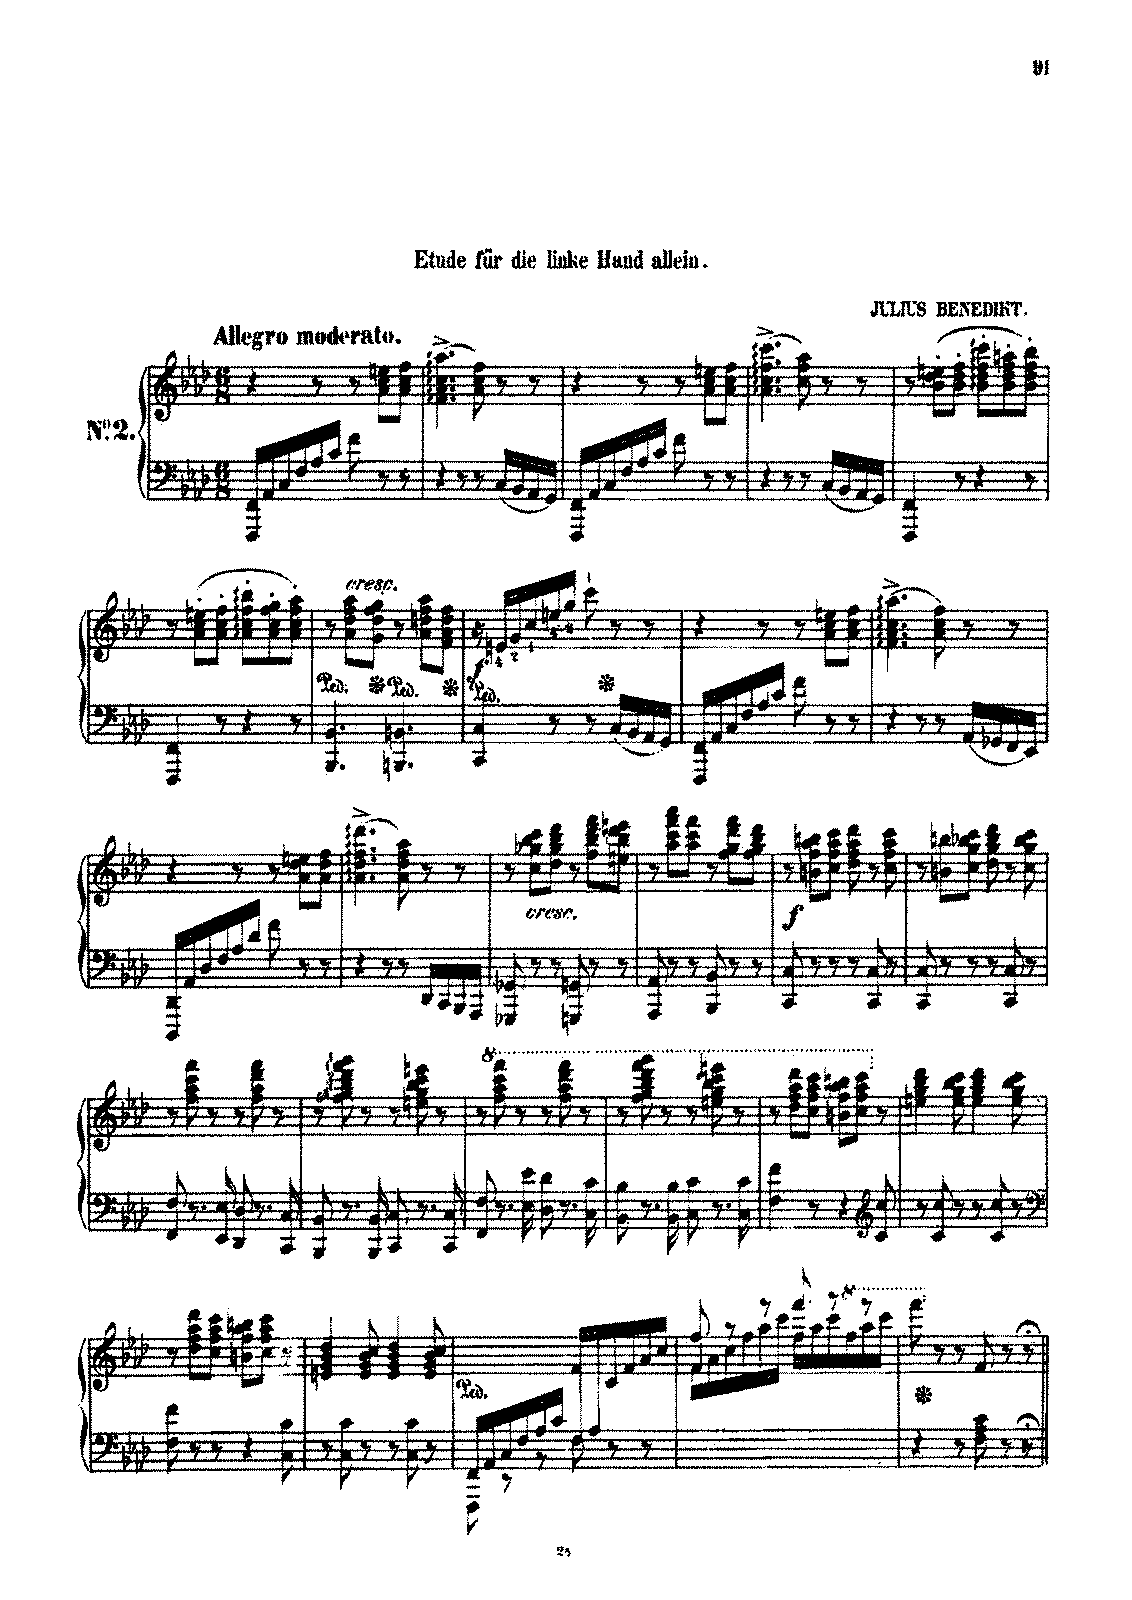 PMLP588061-Benedikt, Julius 1804-1885 - Etude for the Left Hand Alone.pdf